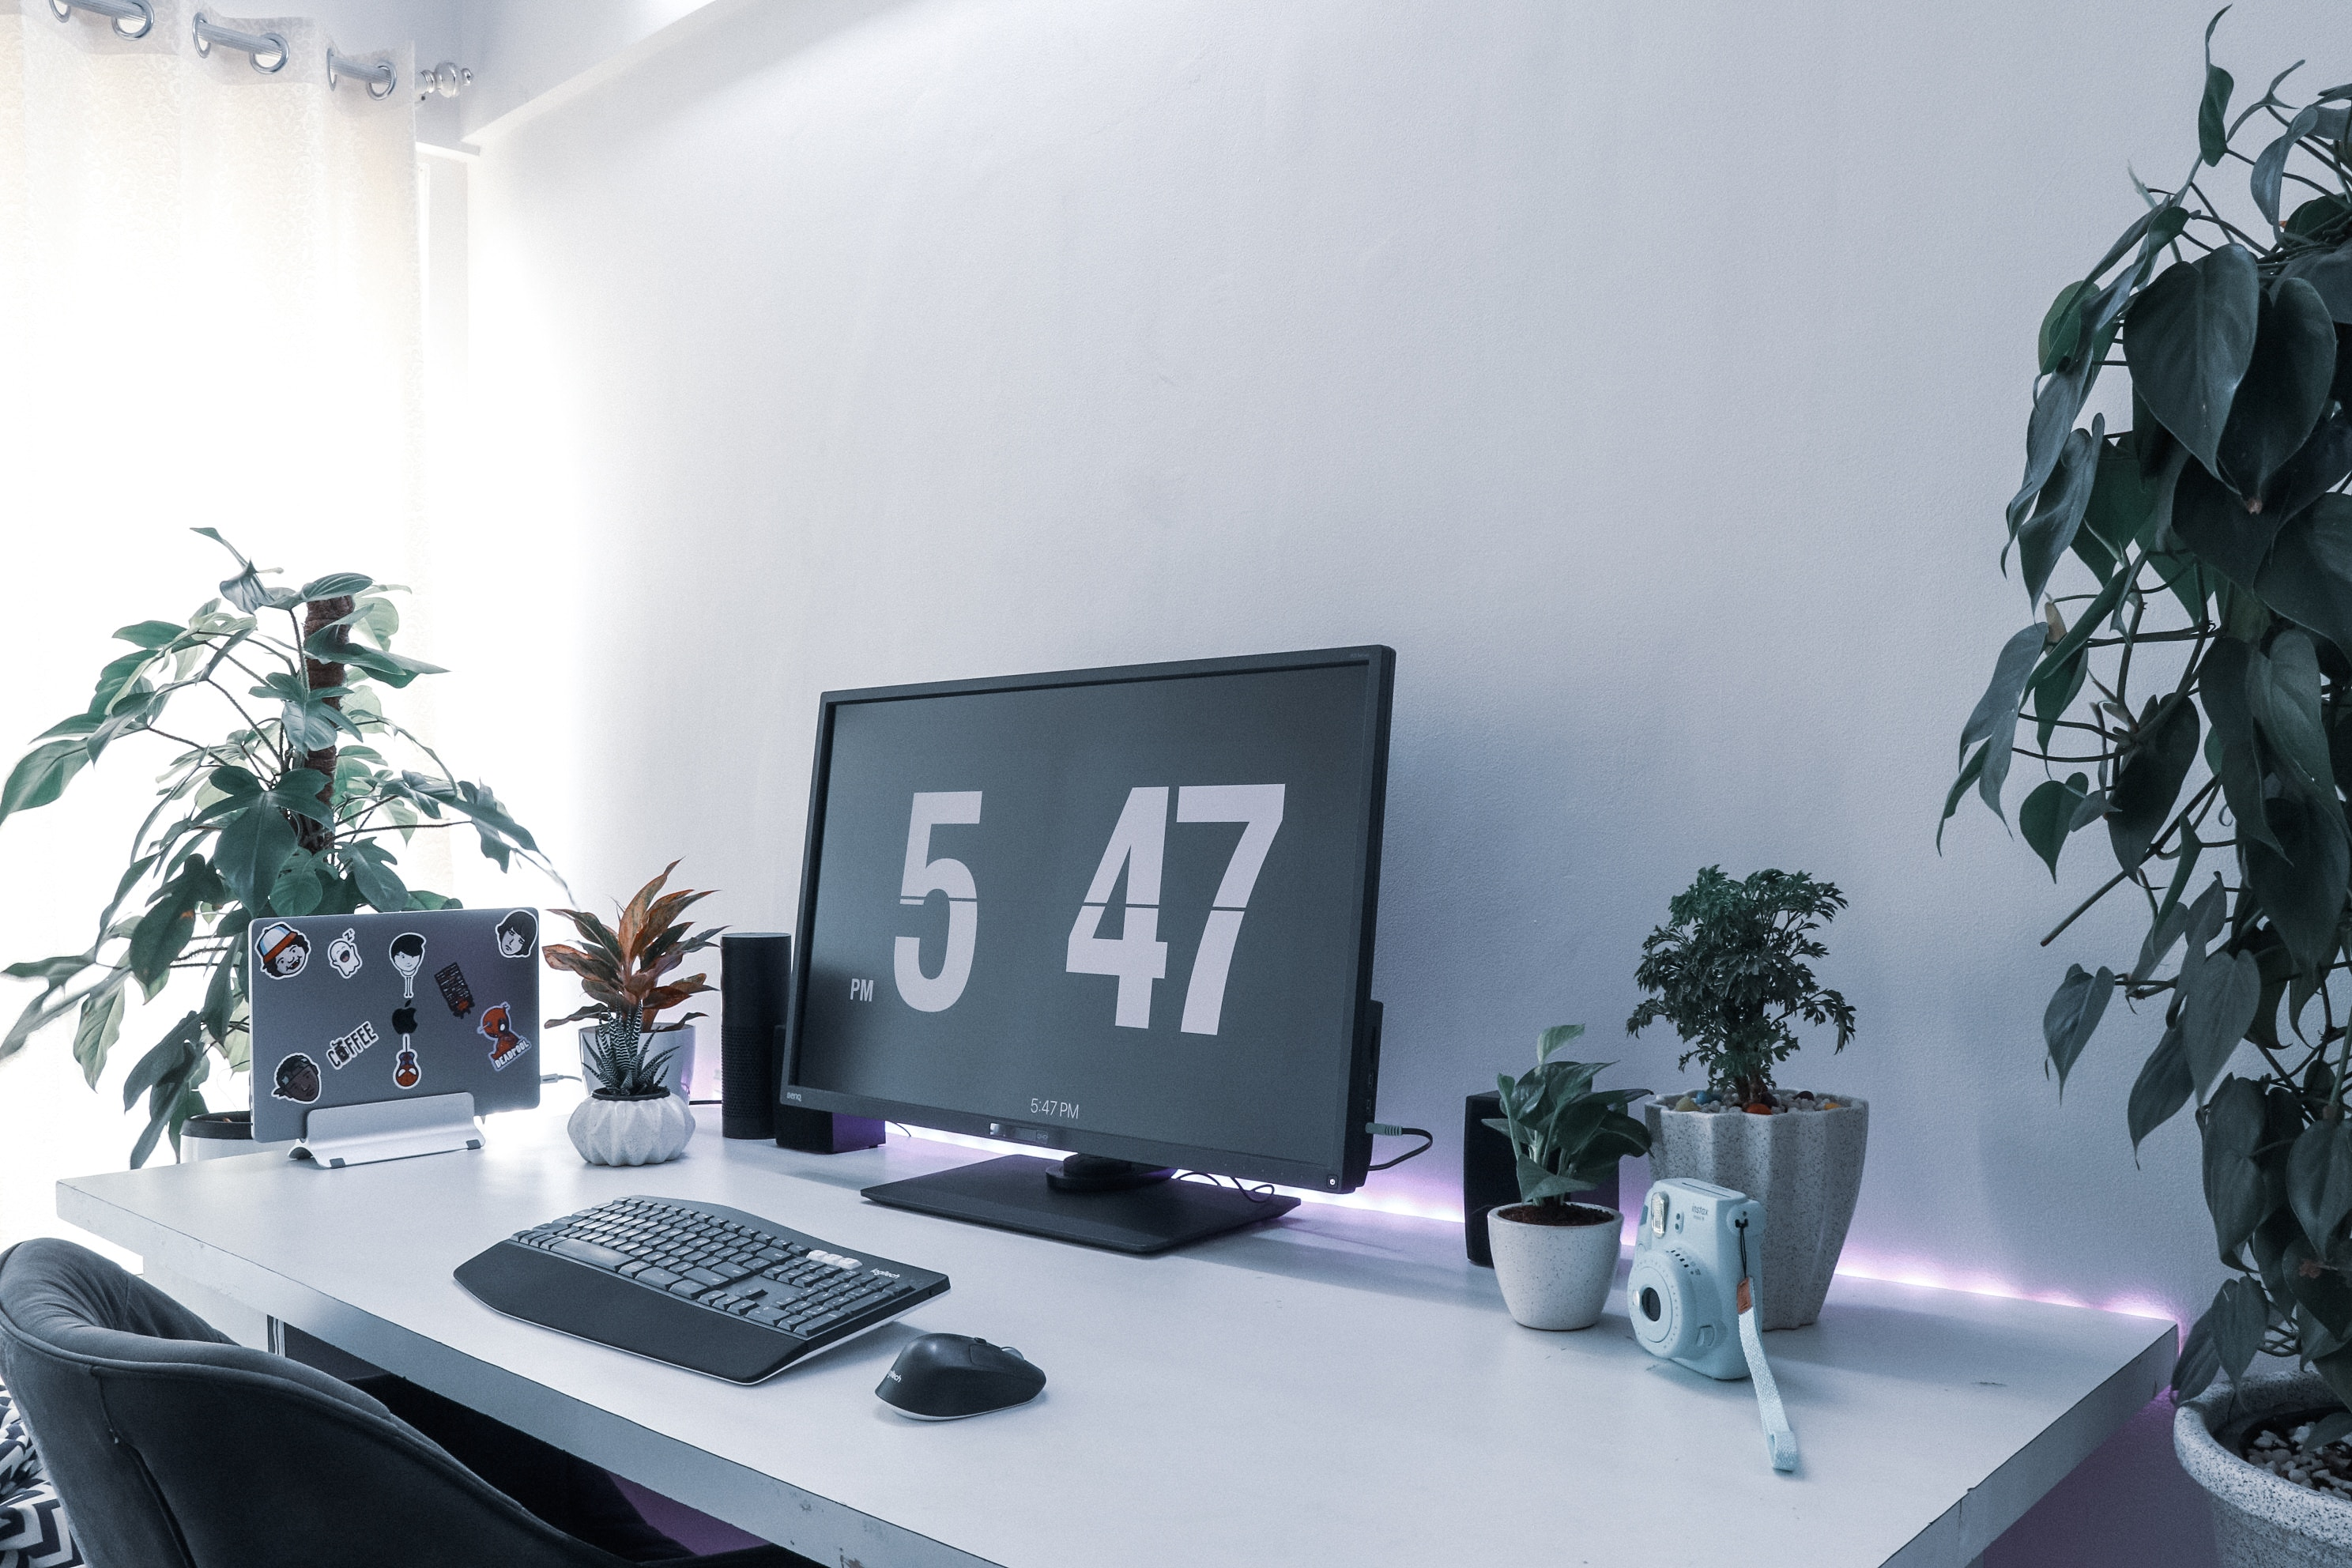 Desk set up with computer screen, keyboard and plants